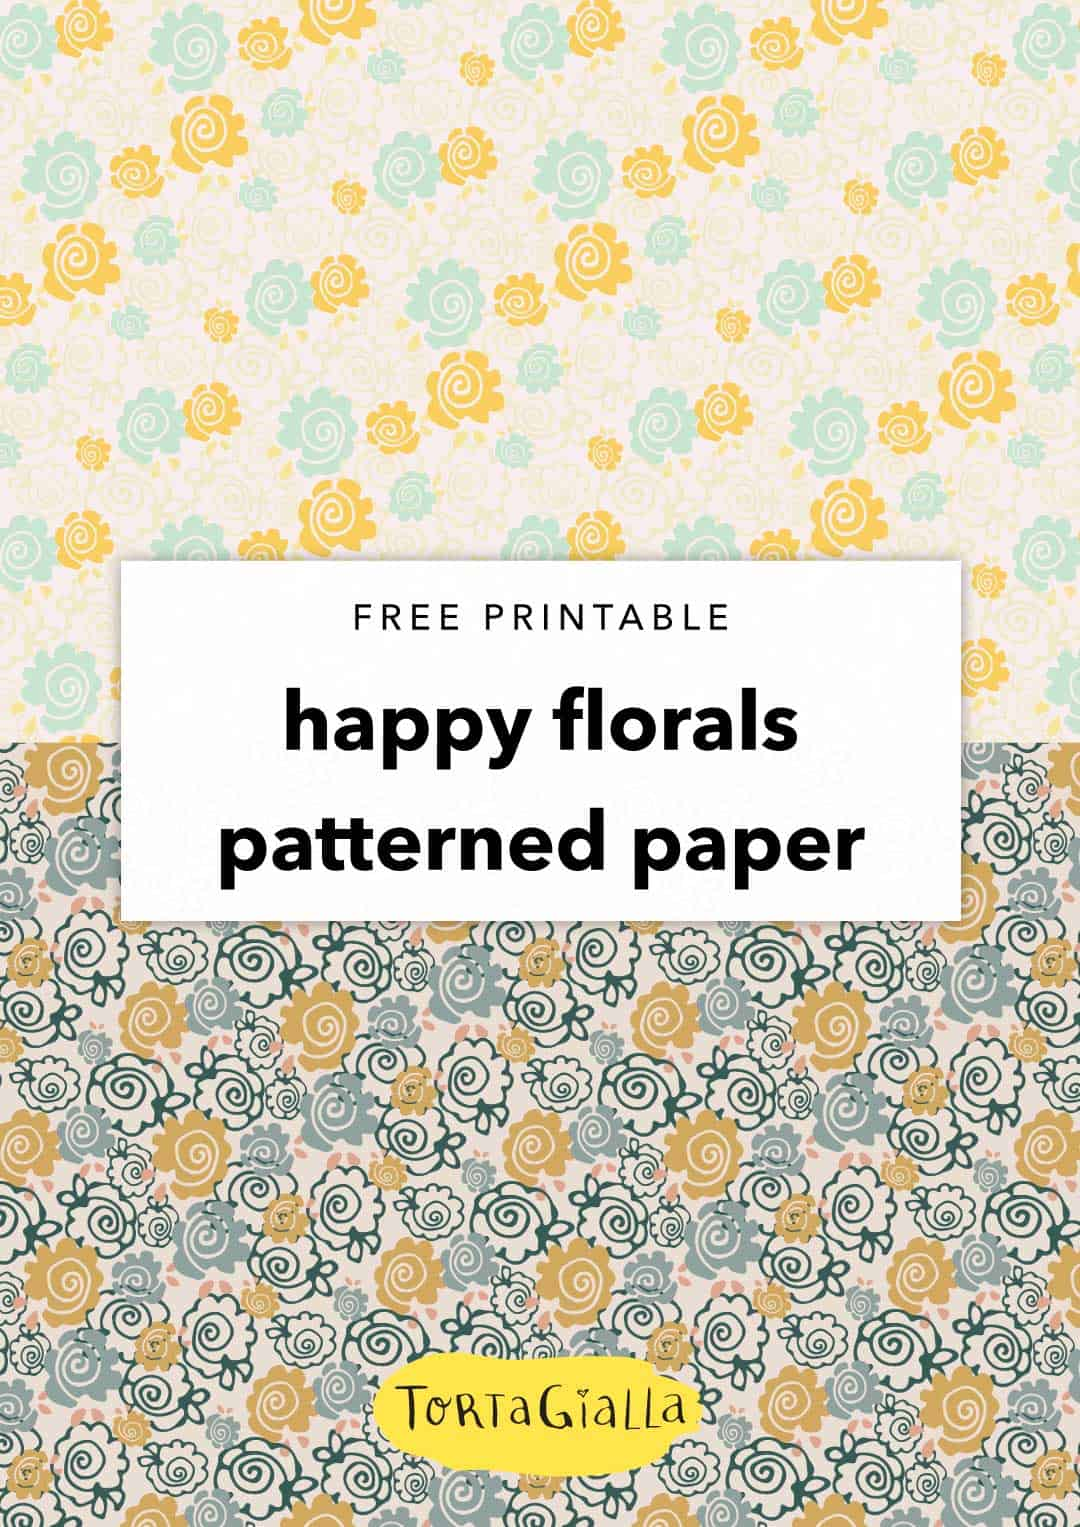 image regarding Decorative Paper Printable identify Absolutely free Printable Ornamental Paper - Content Florals tortagialla